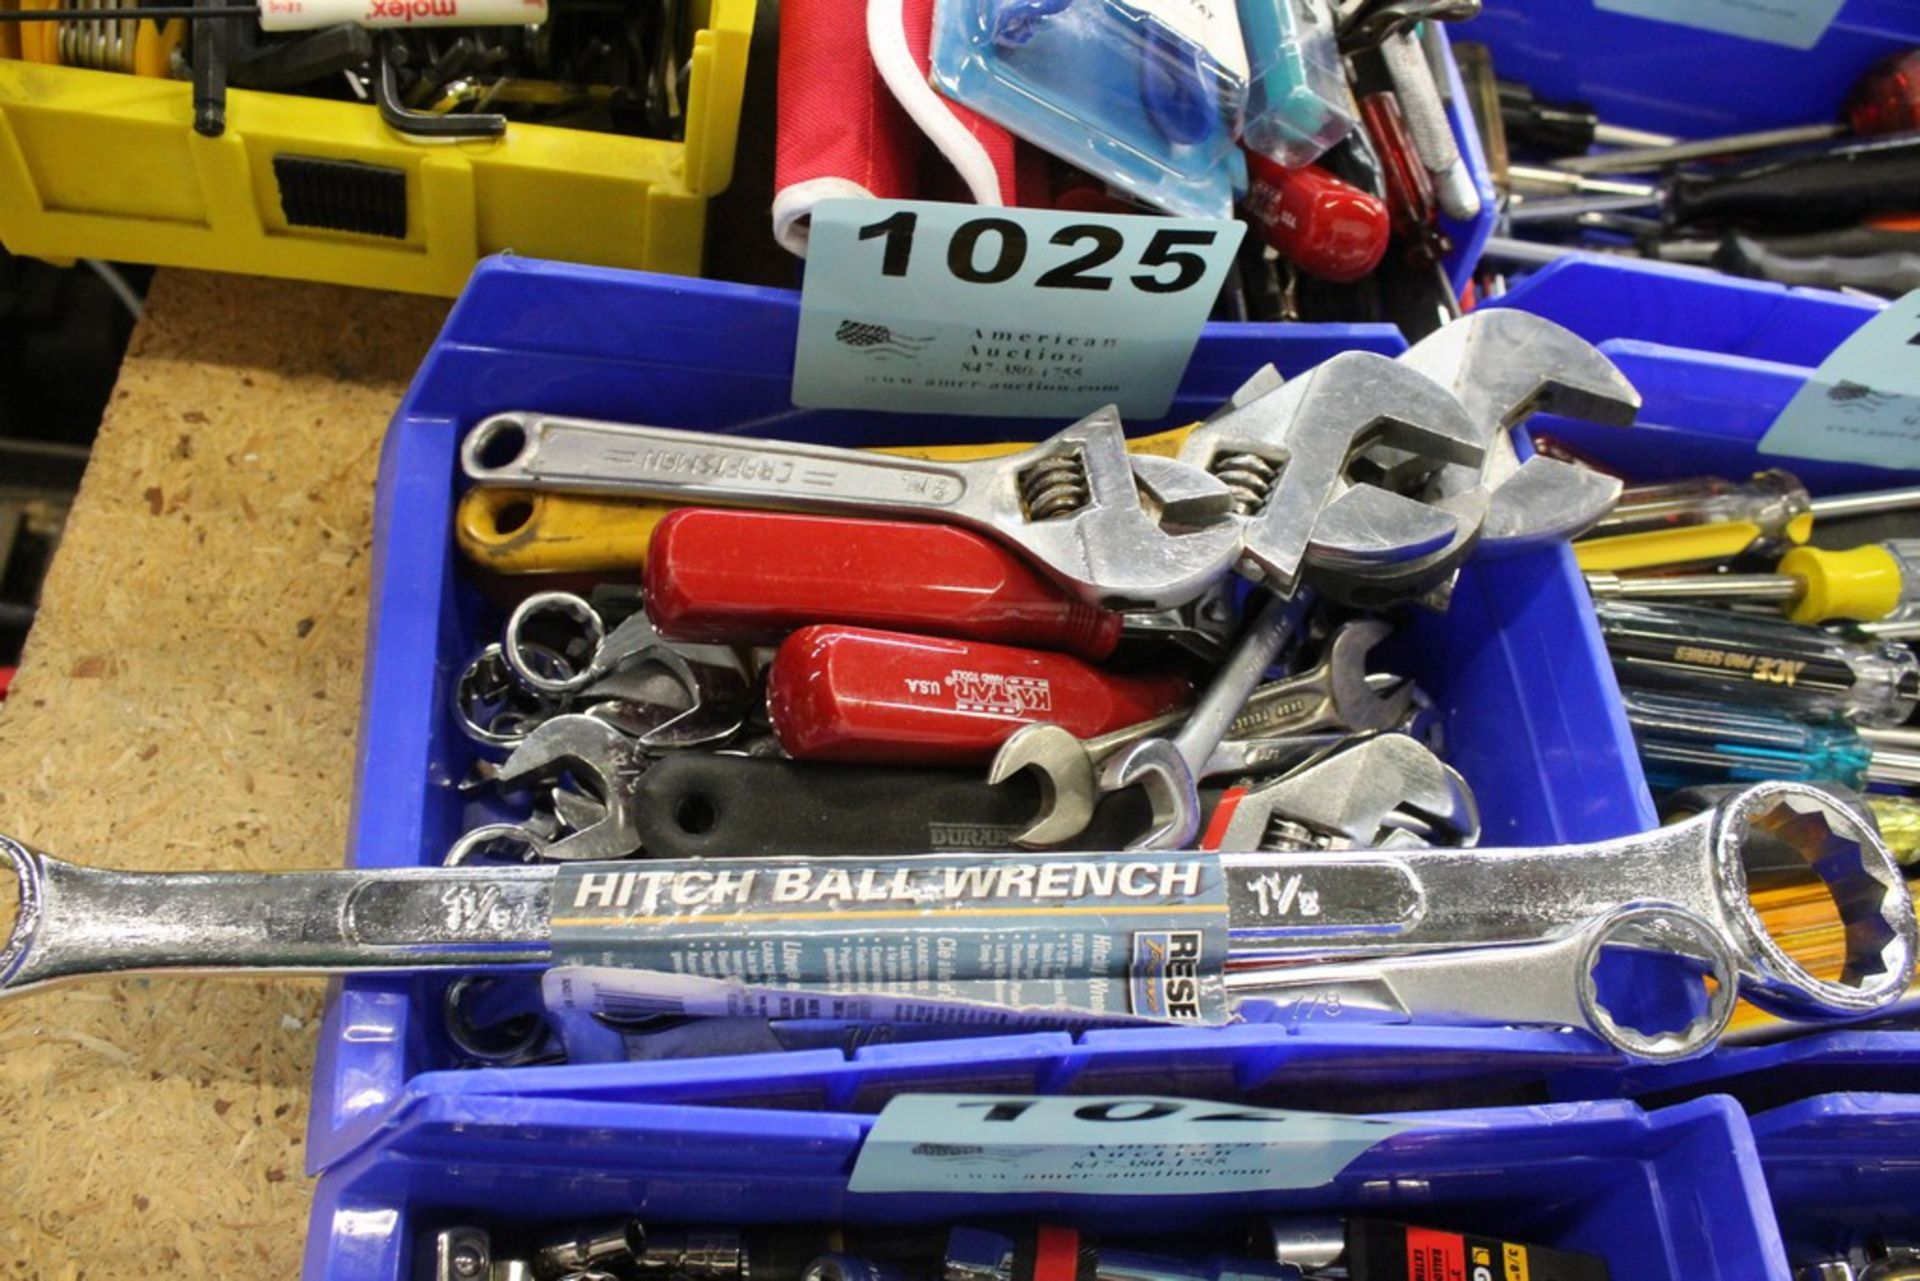 Lot 1025 - ASSORTED CRESCENT AND BOX WRENCHES